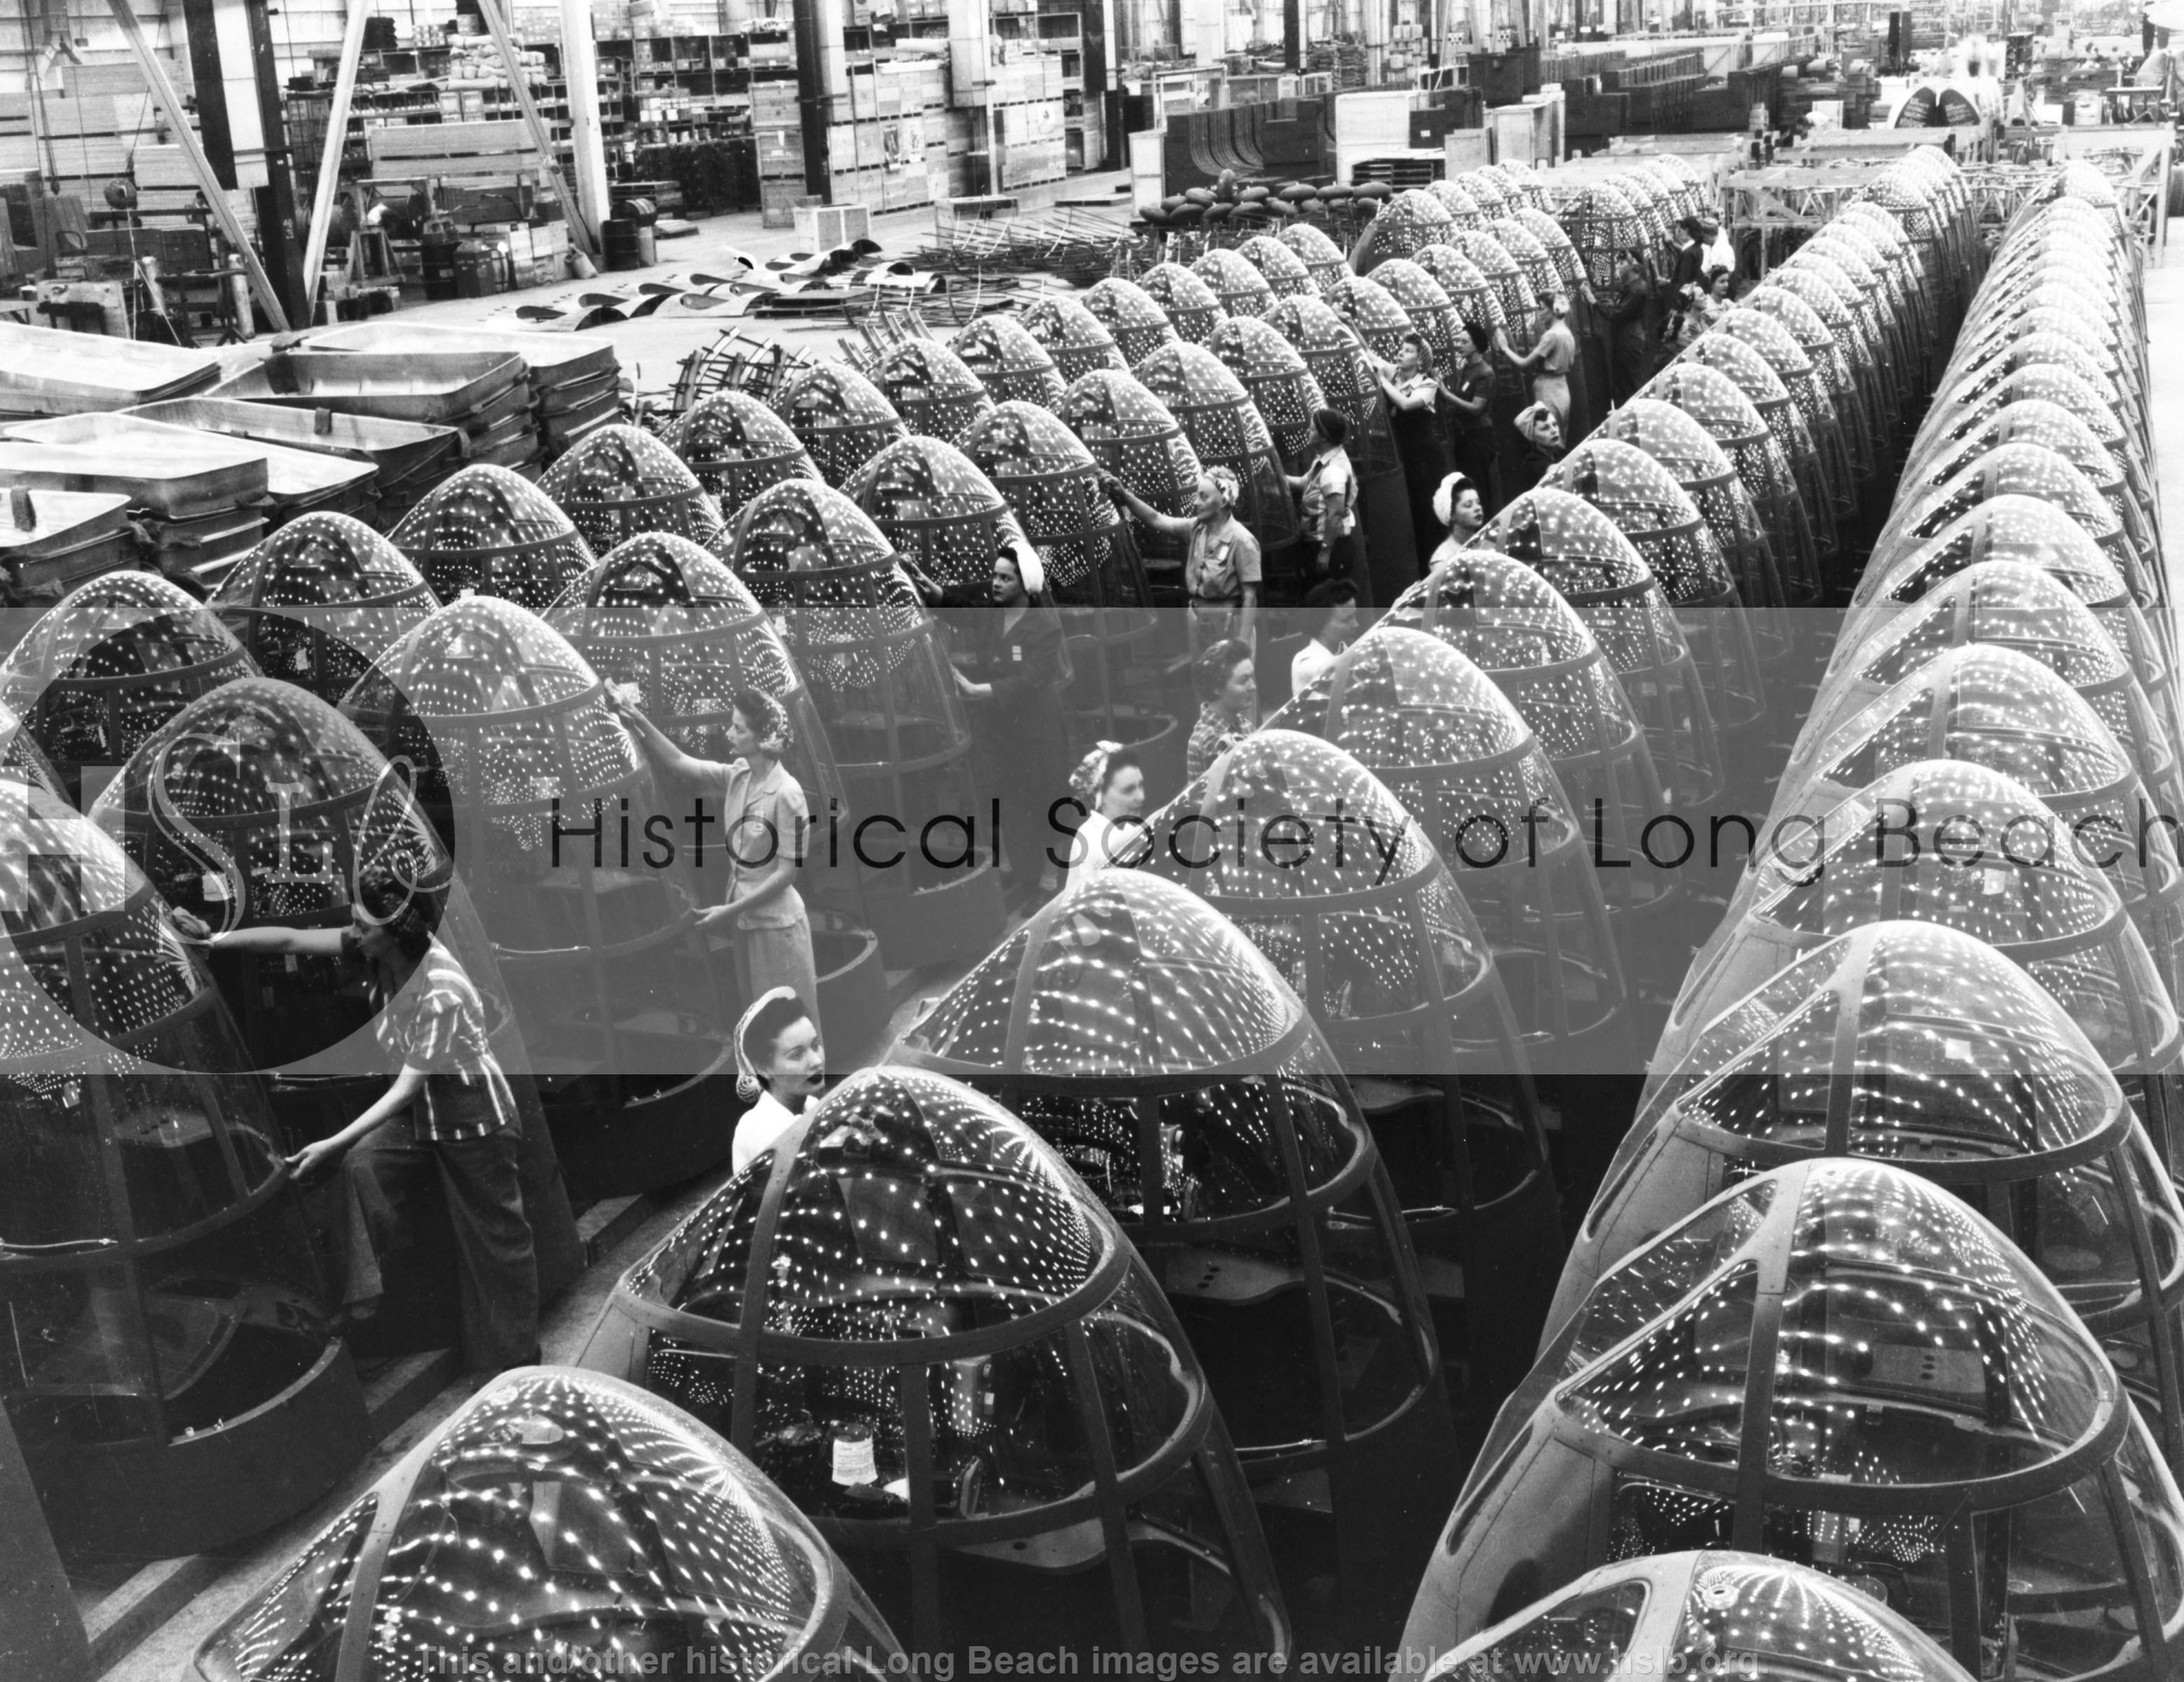 Nose cones at McDonnell Douglas, 1942 vintage photograph